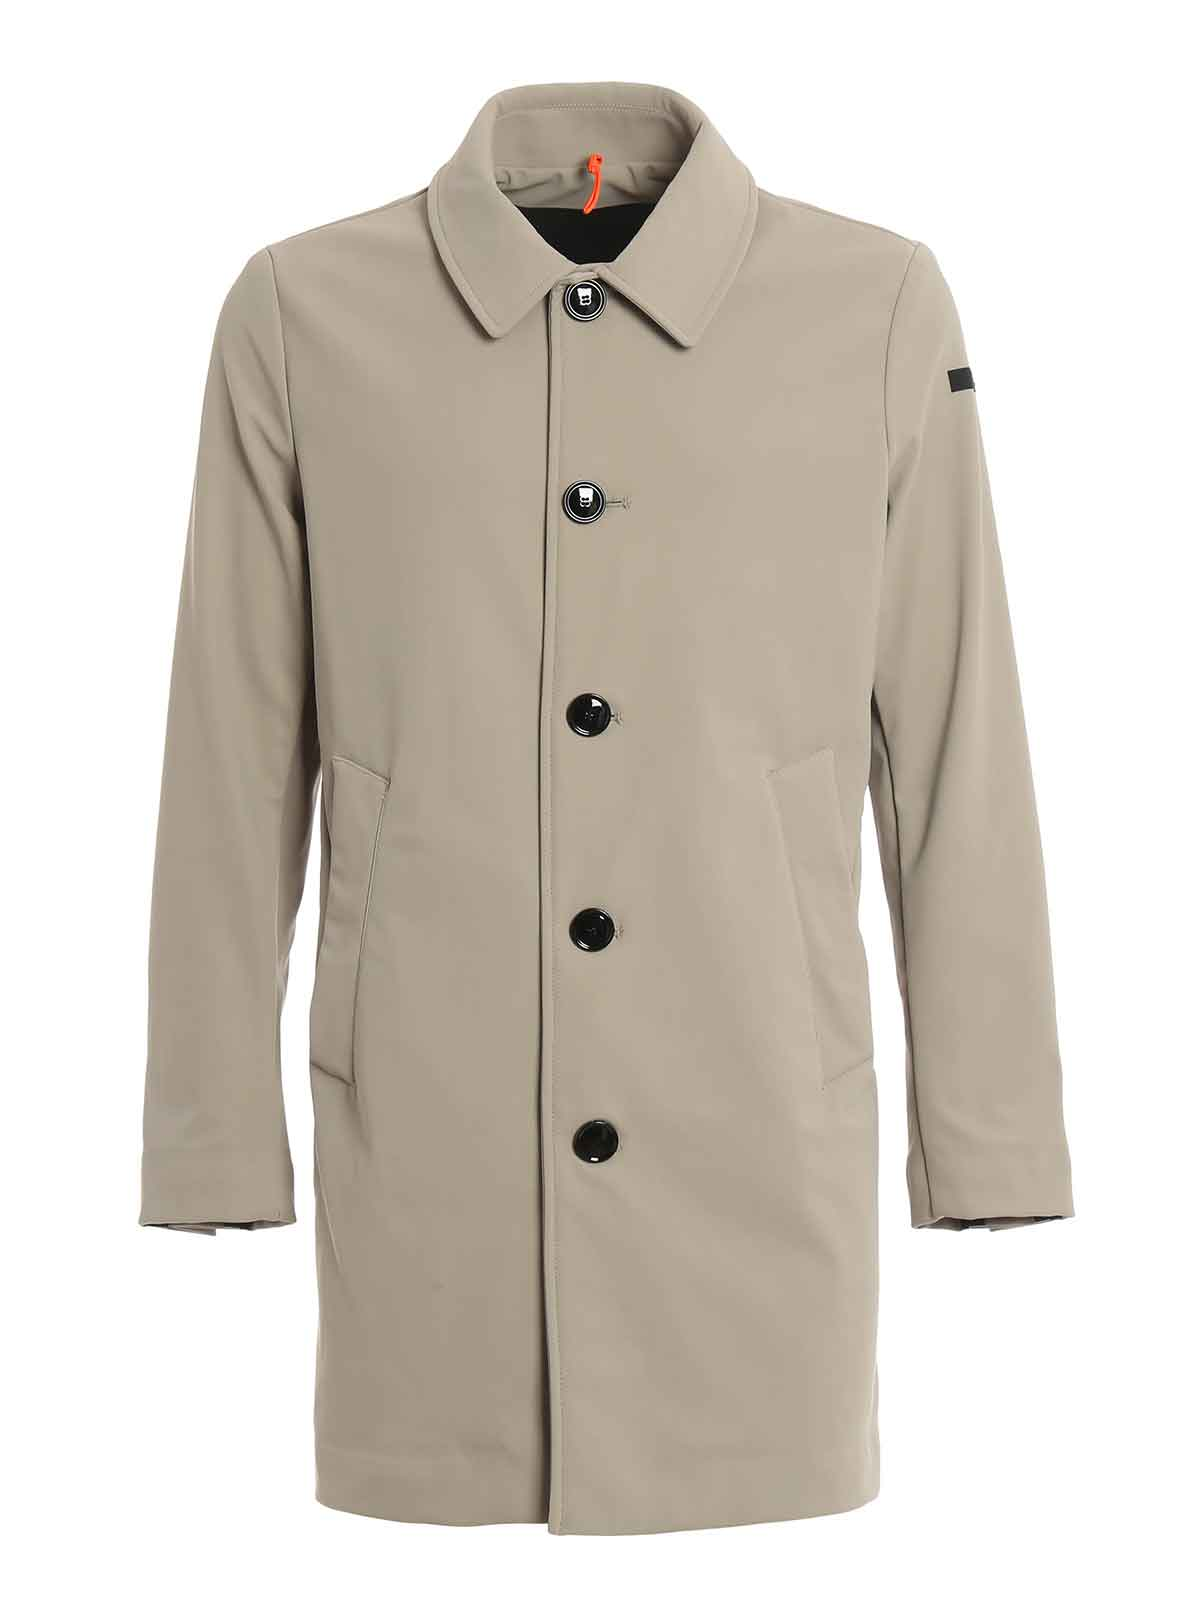 Free shipping BOTH ways on womens classic trench coats, from our vast selection of styles. Fast delivery, and 24/7/ real-person service with a smile. Click or call